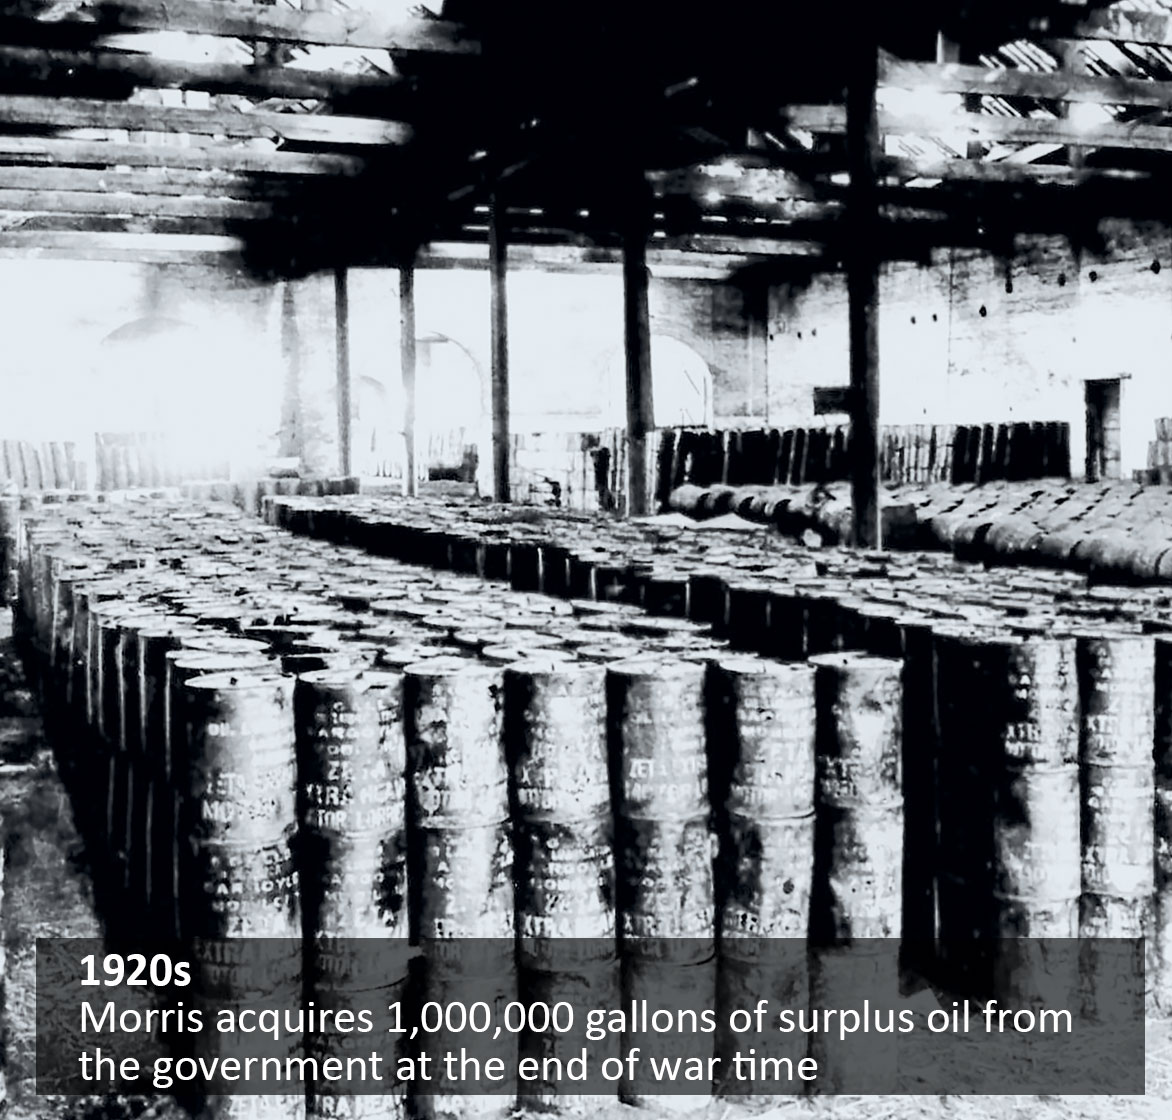 Morris acquires 1,000,000 gallons of surplus oil from the government at the end of war time